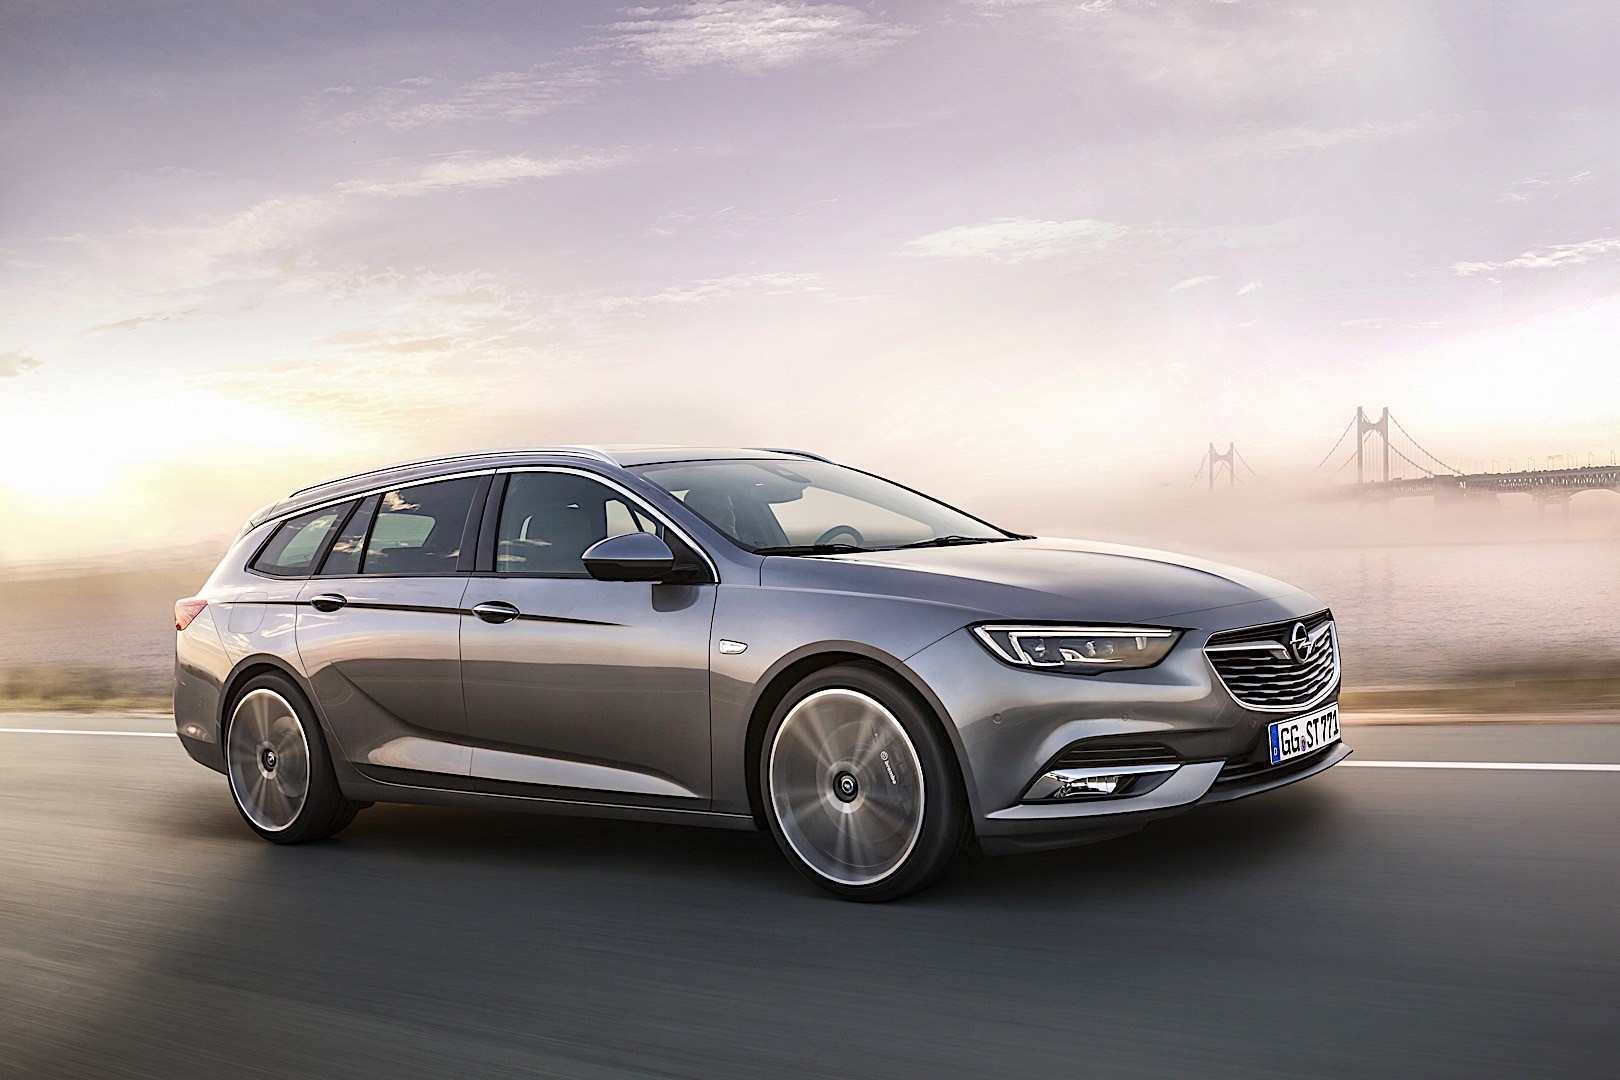 12 New 2019 Opel Insignia Interior